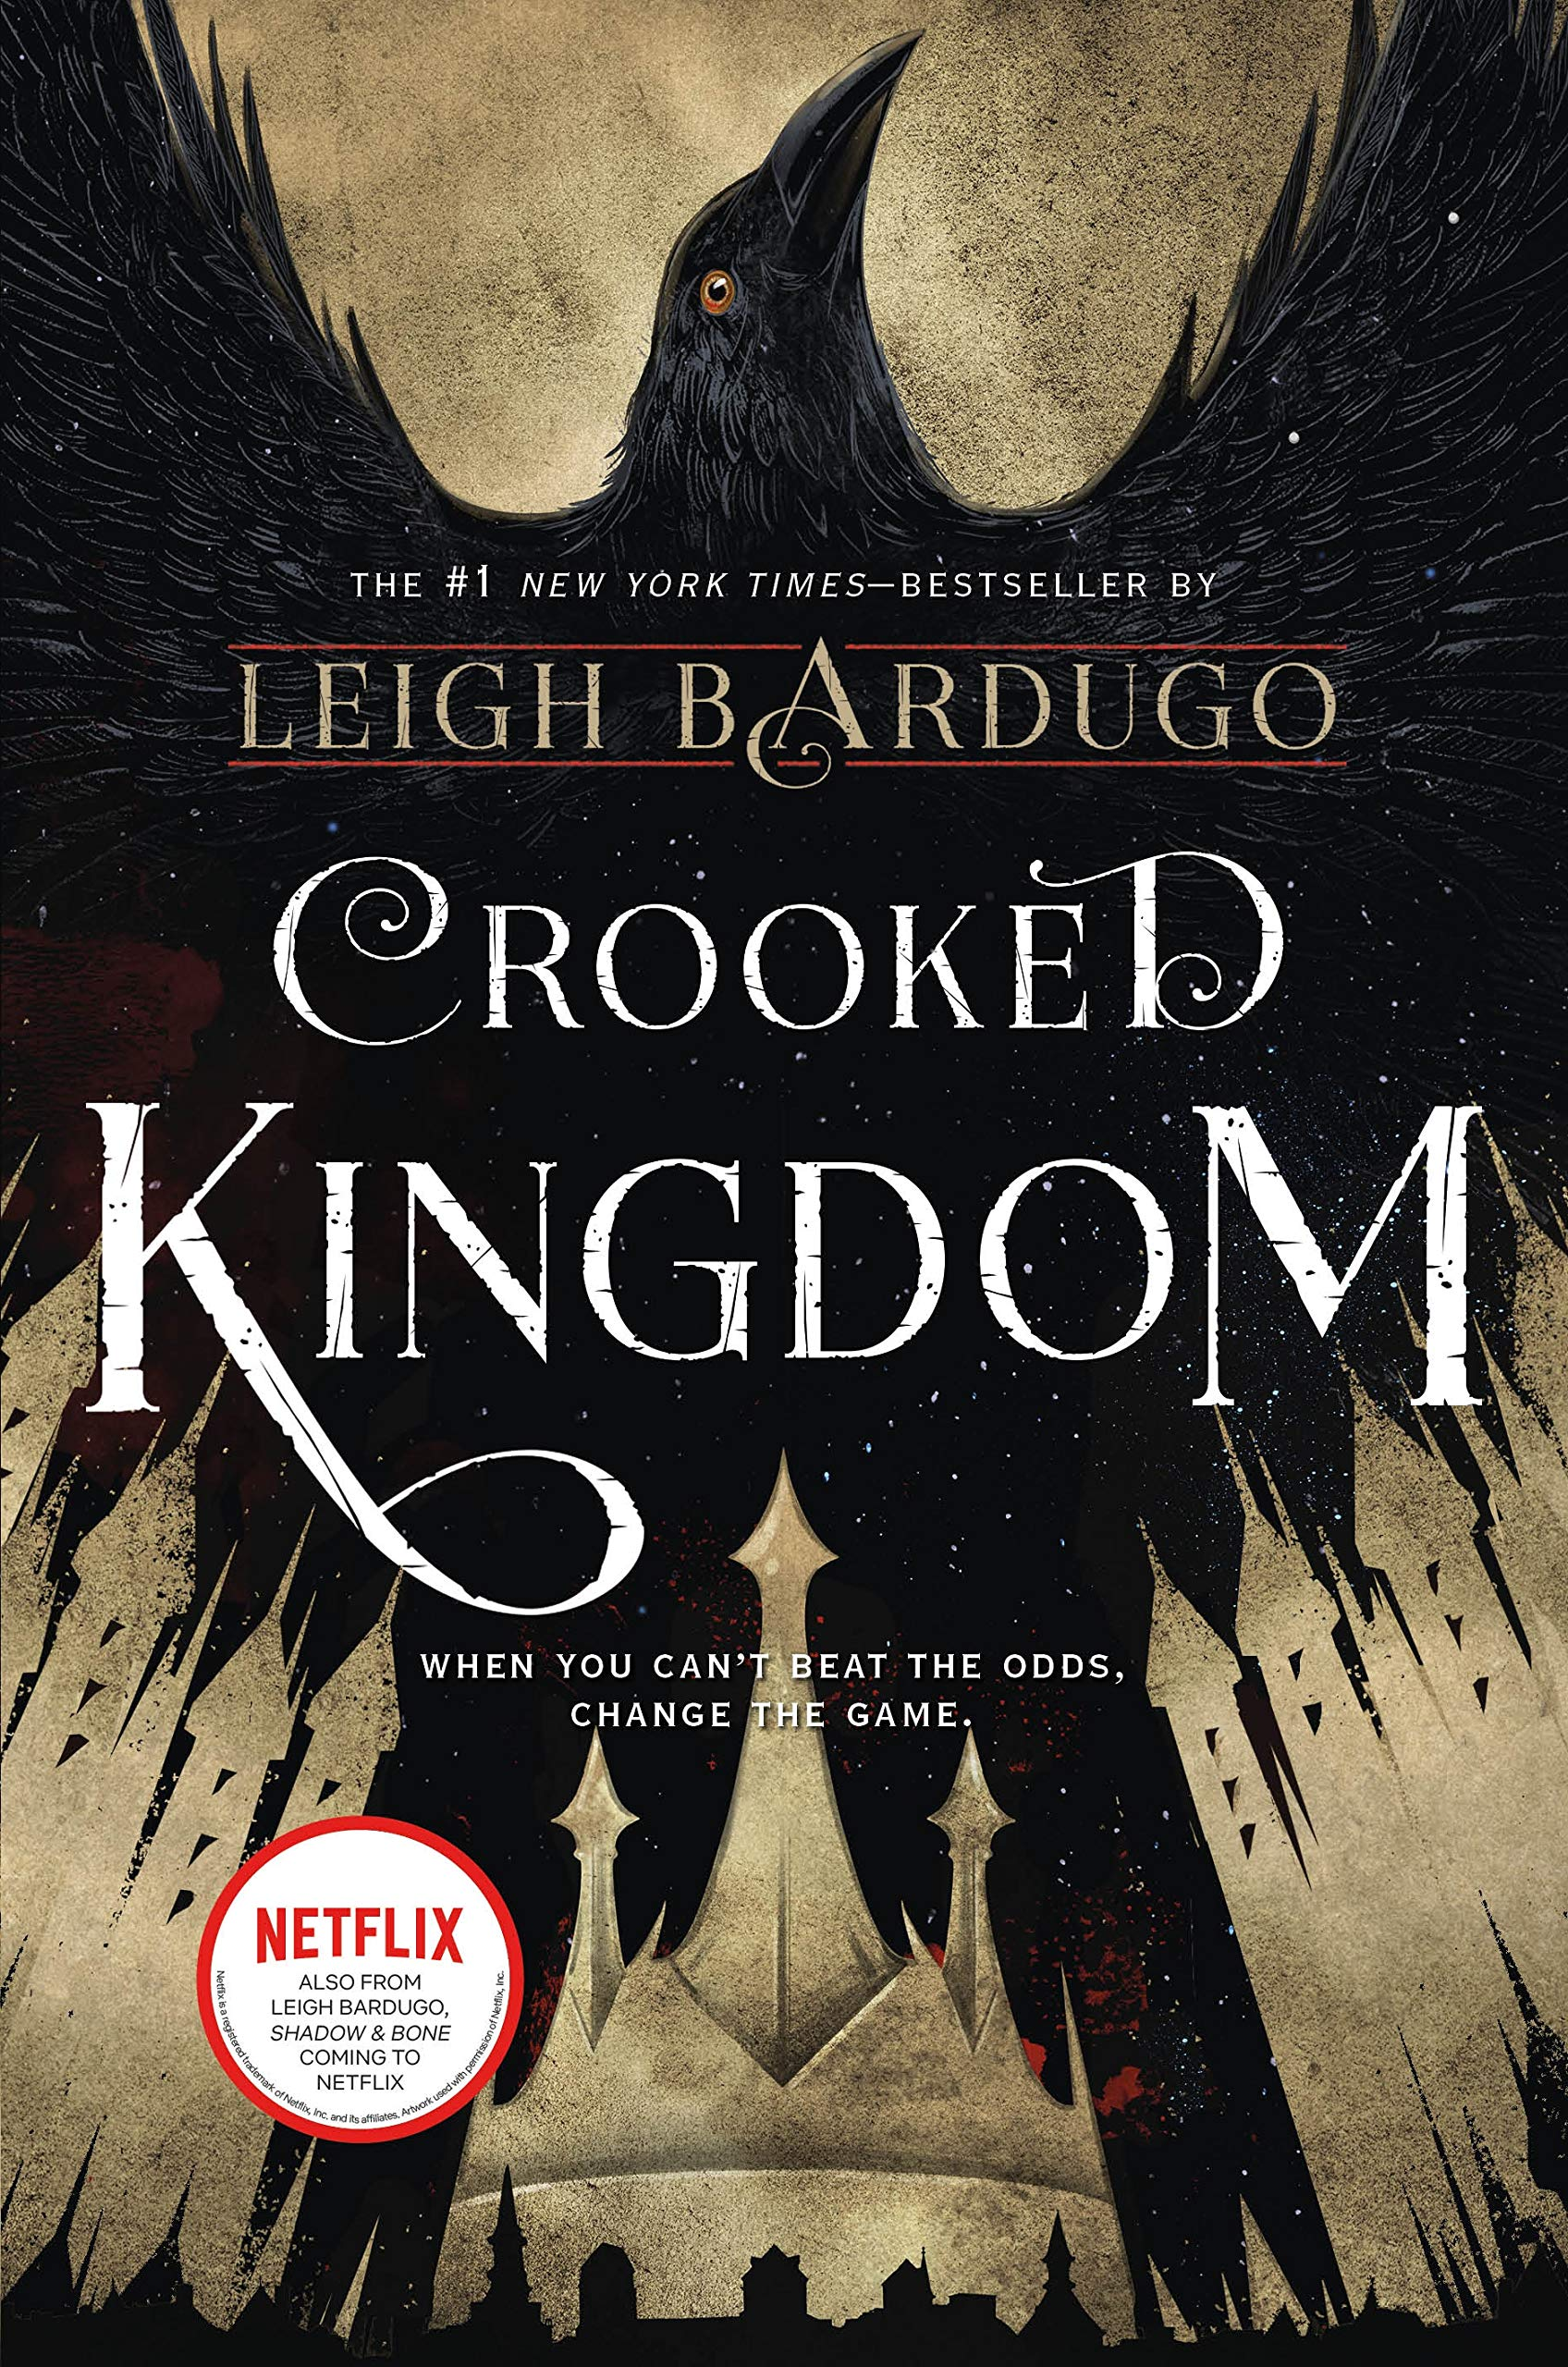 Amazon.com: Crooked Kingdom: A Sequel to Six of Crows (Six of Crows, 2)  (9781627792134): Bardugo, Leigh: Books